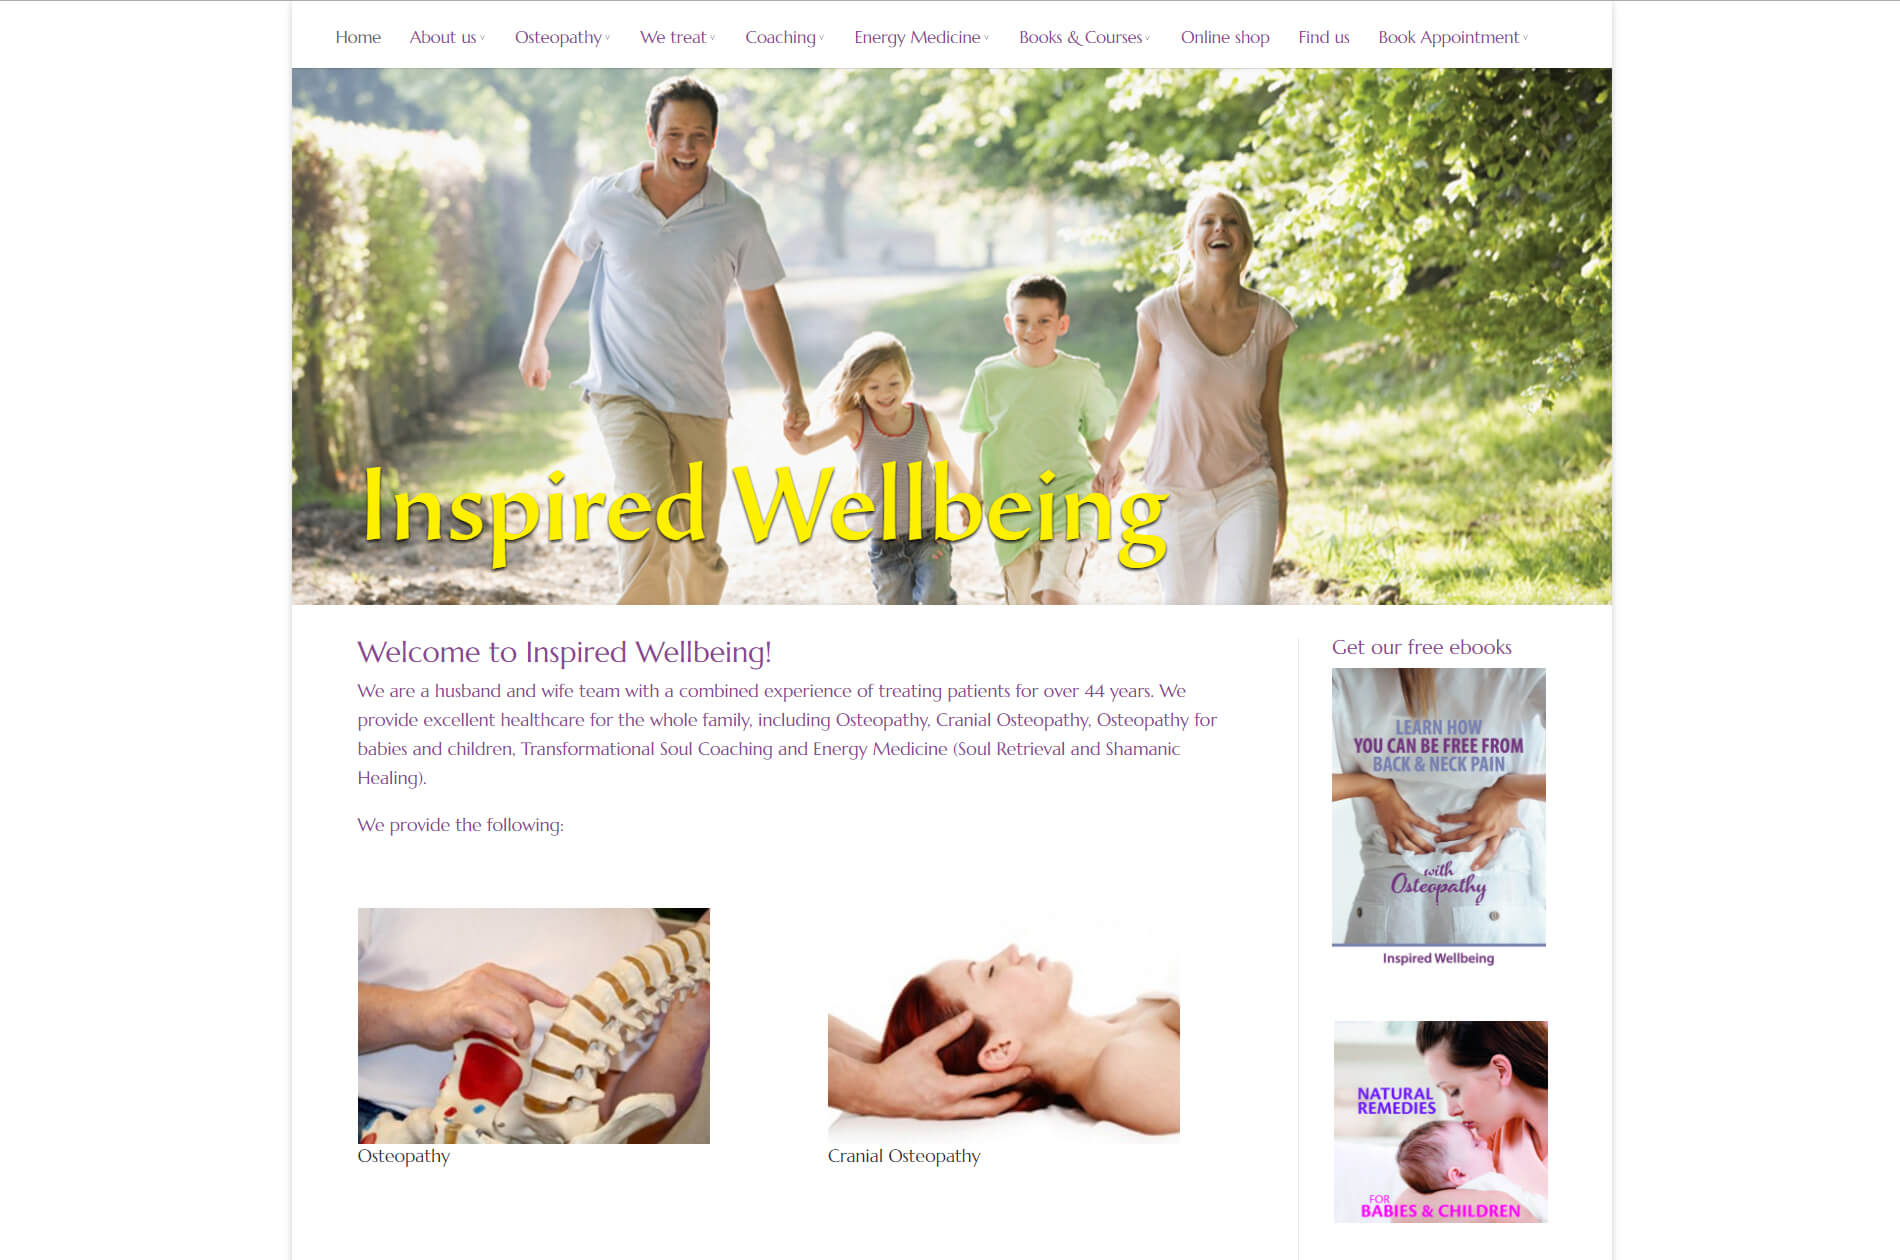 Web design anweb Inspired Wellbeing